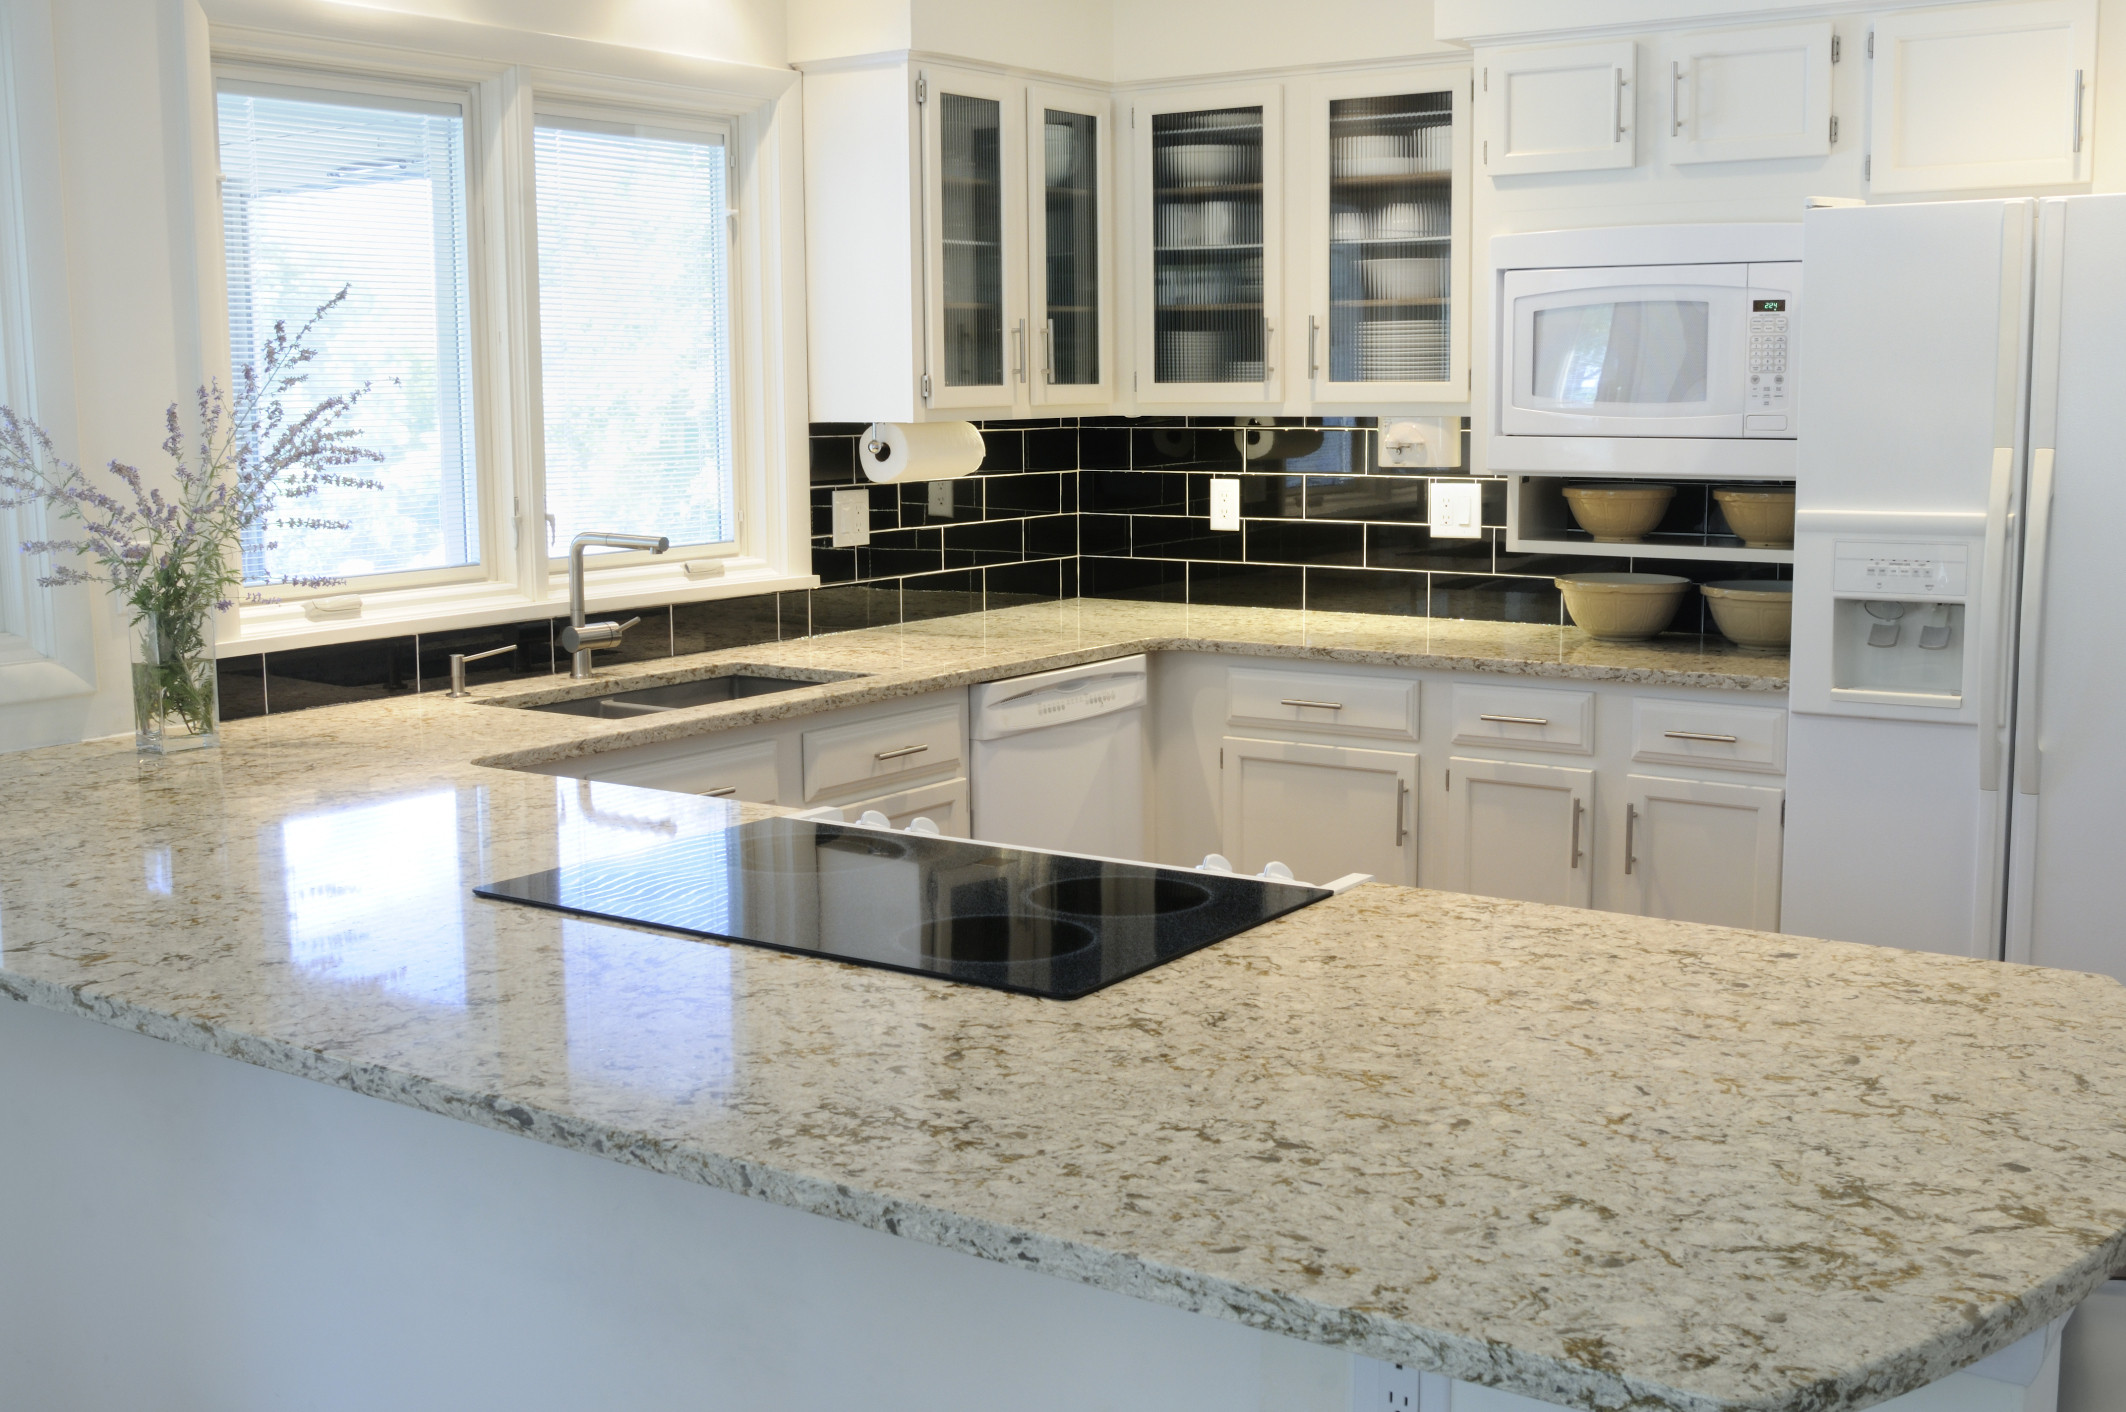 Kitchen Top Granite Colors 10 Reasons To Let Go Of The Granite Obsession Already Huffpost